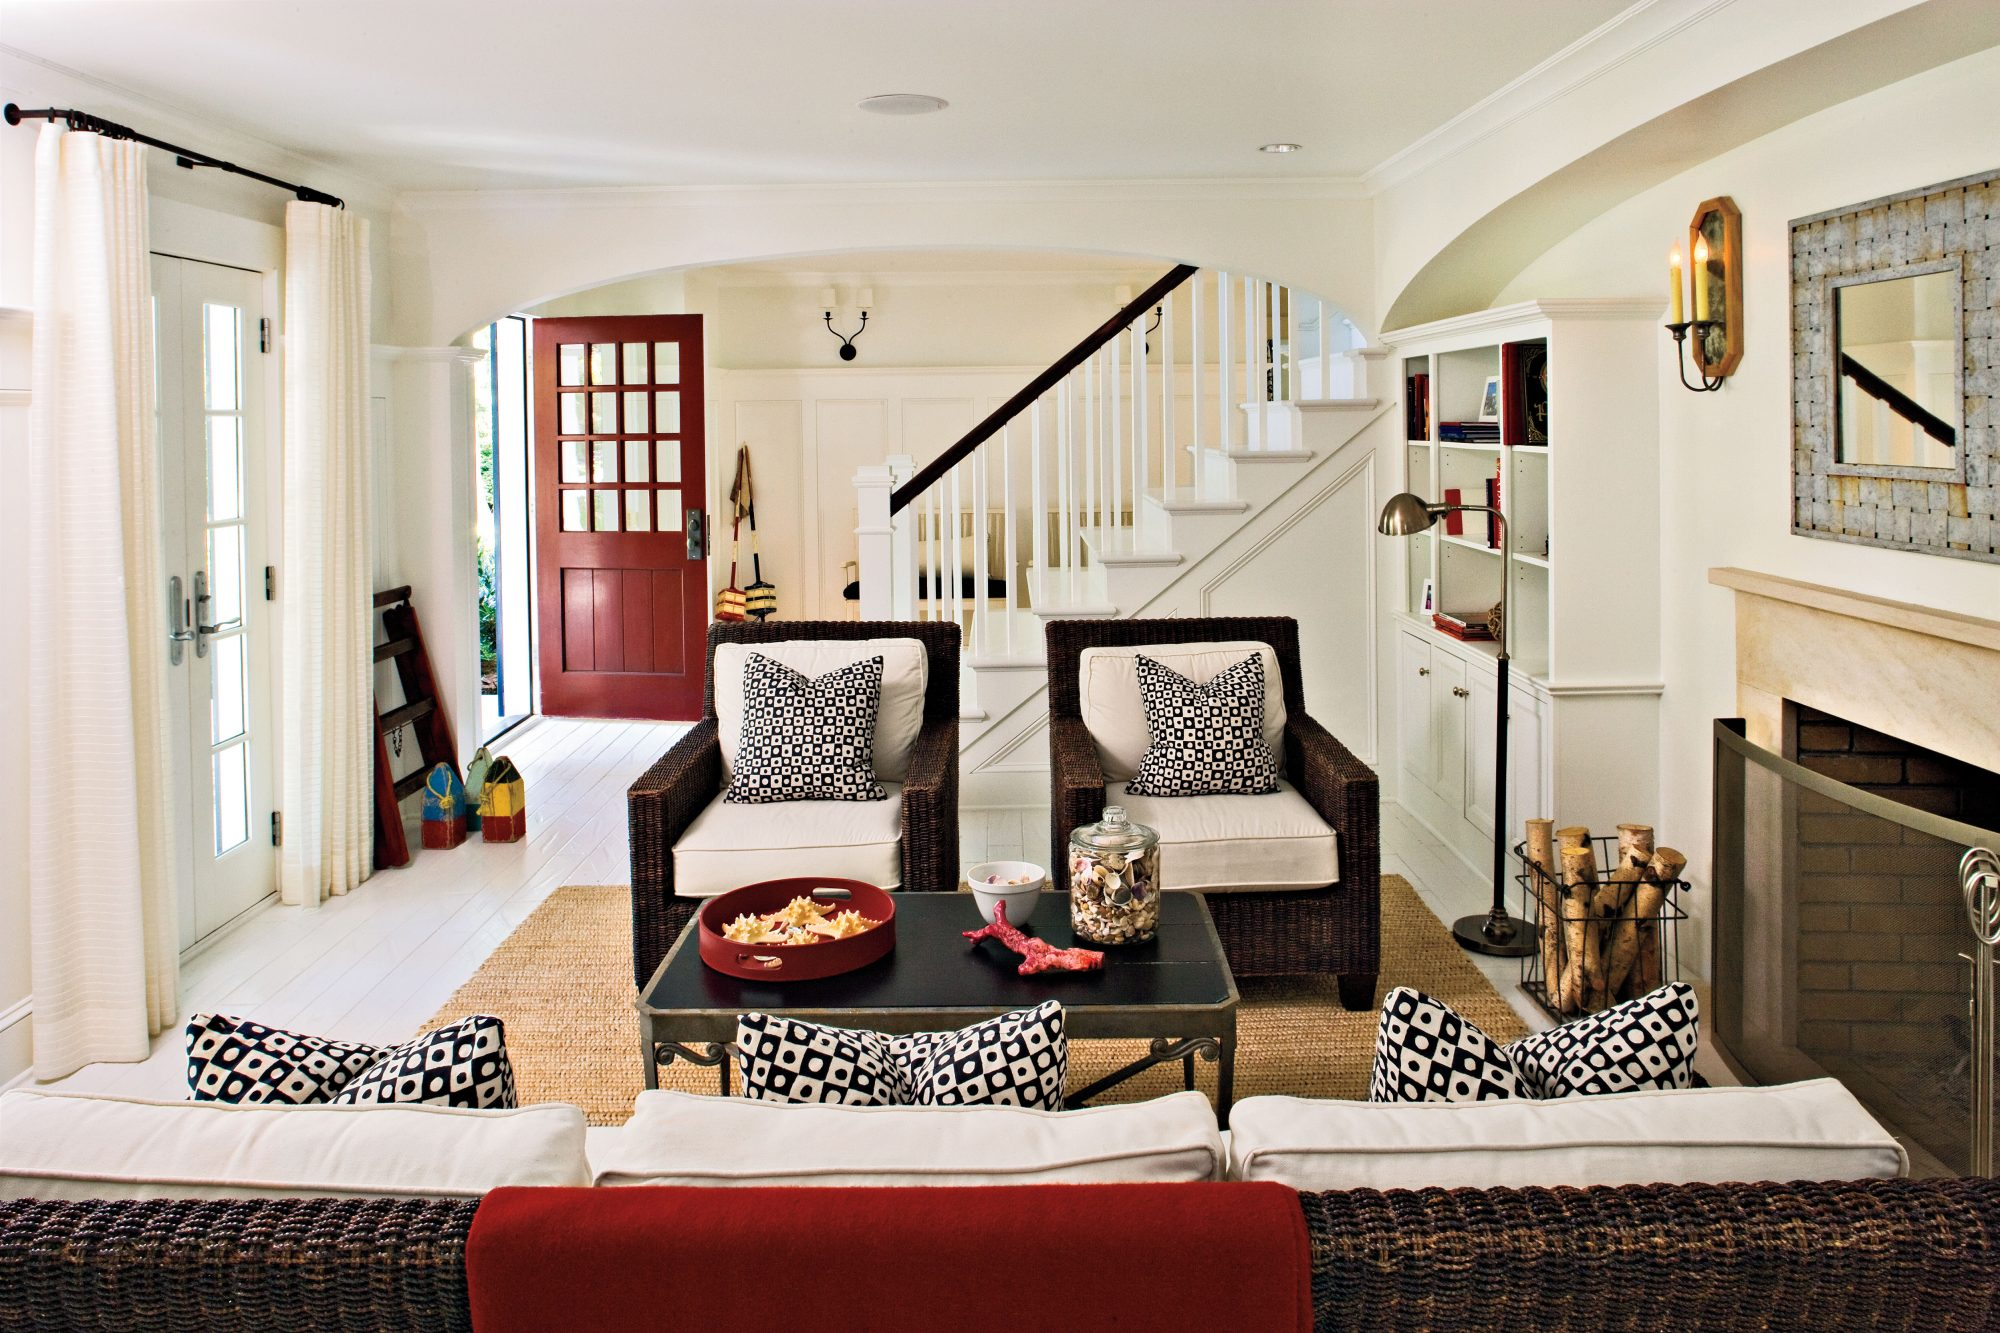 Living Room Makeover Before And After 18 Budgetfriendly Makeovers  Southern Living